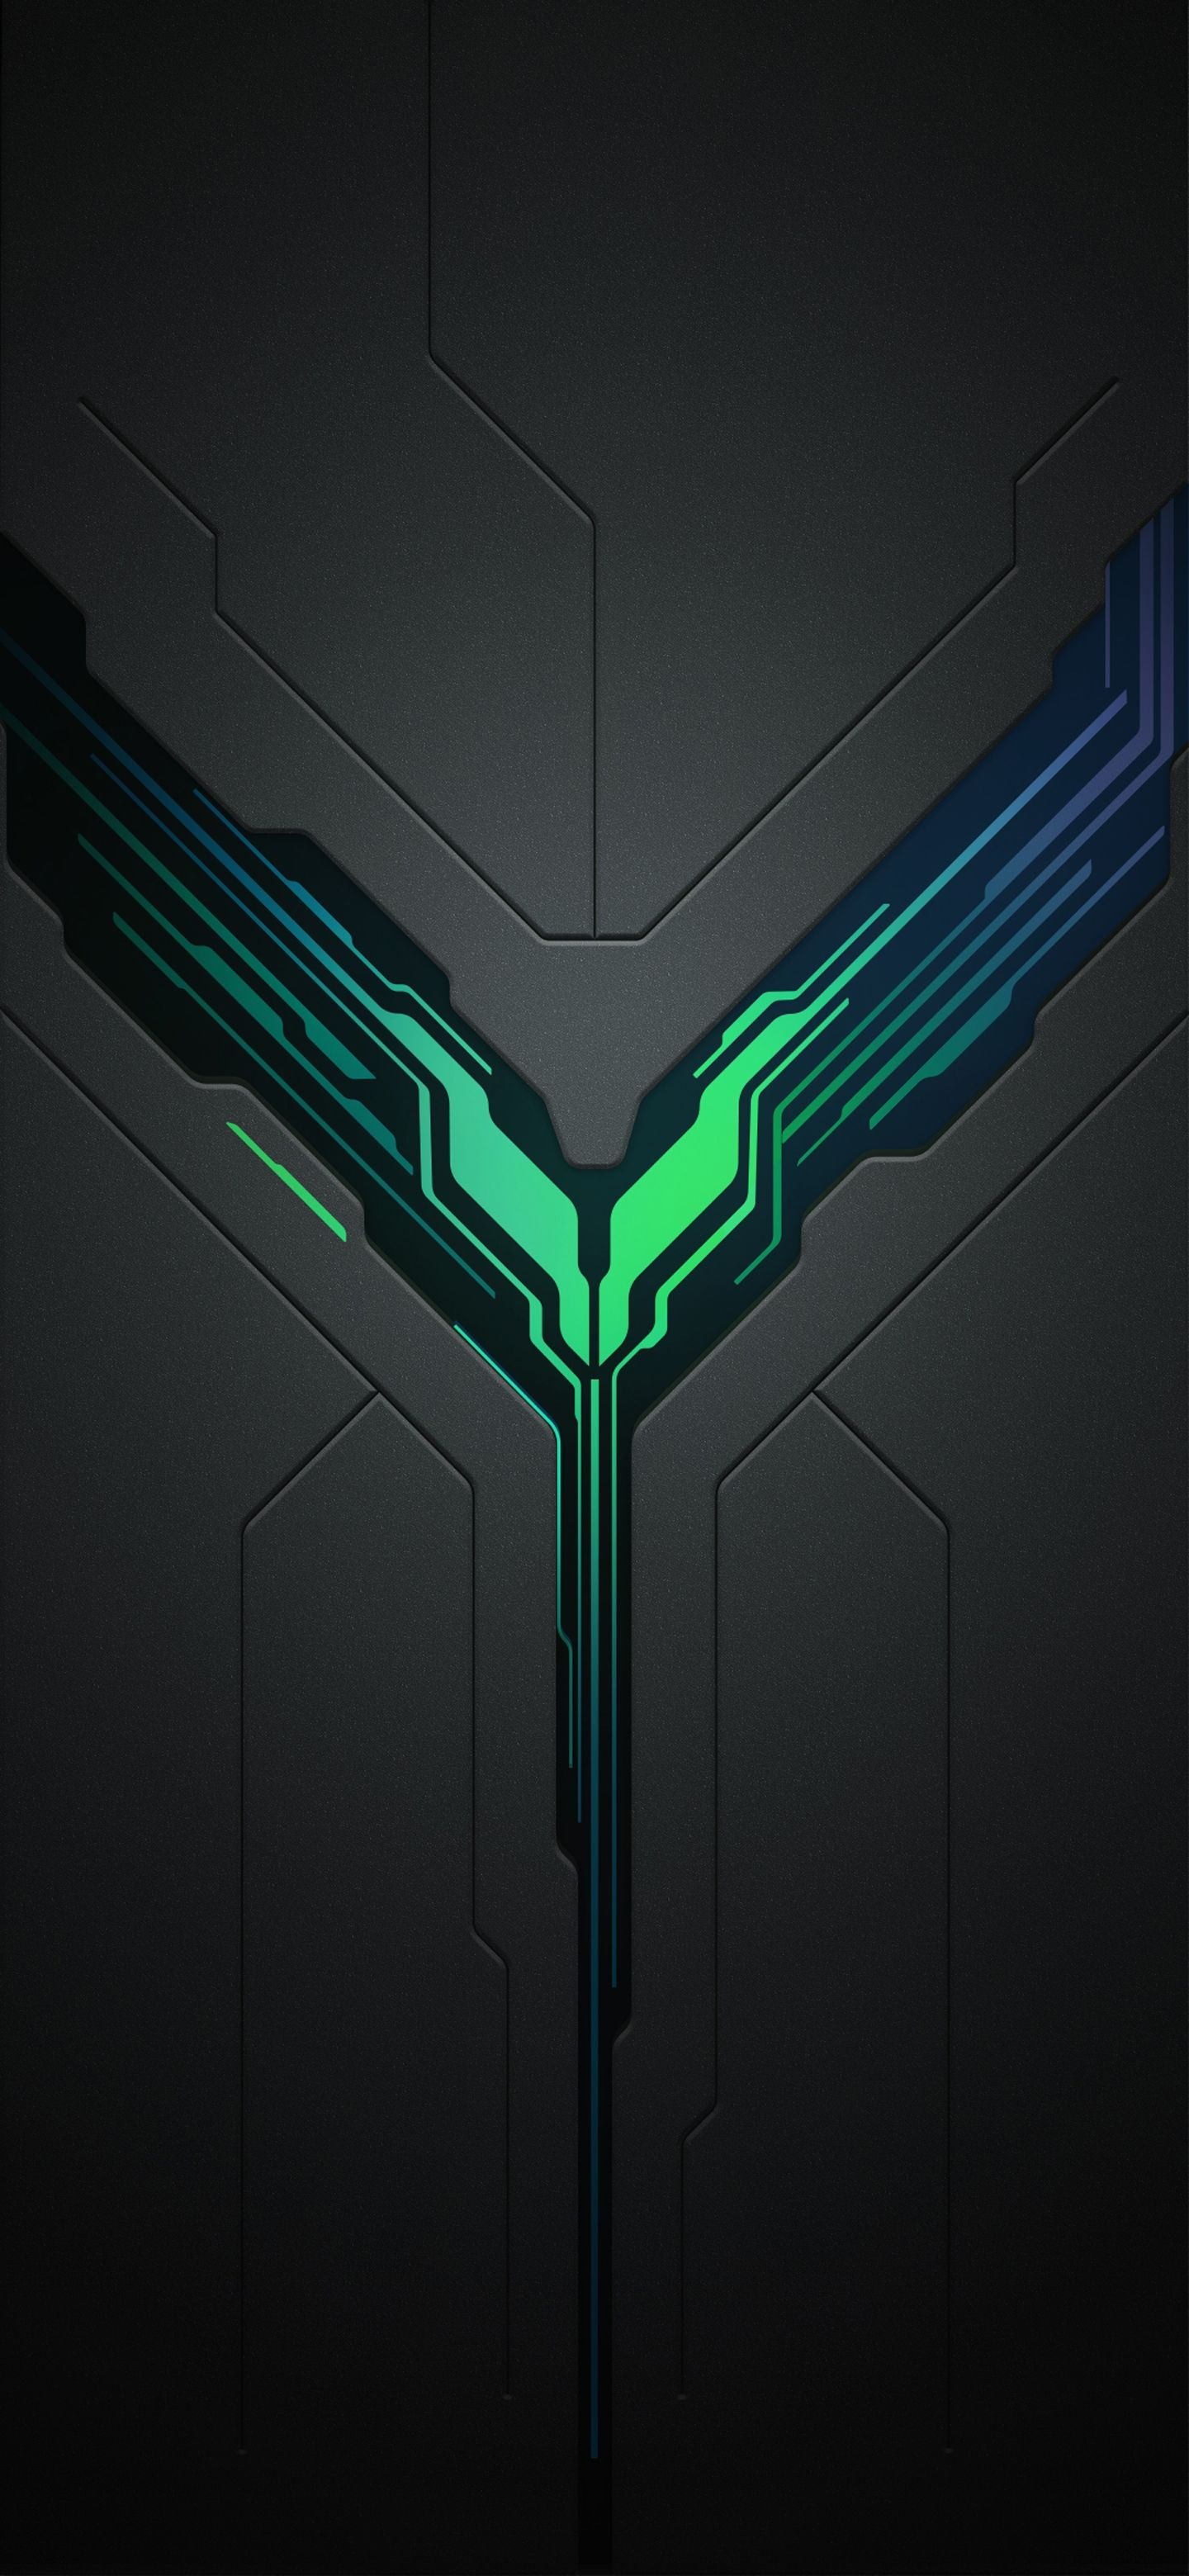 Xiaomi Black Shark 2 Pro Wallpapers Qhd Download Droidviews Oneplus Wallpapers Xiaomi Wallpapers Hd Phone Wallpapers